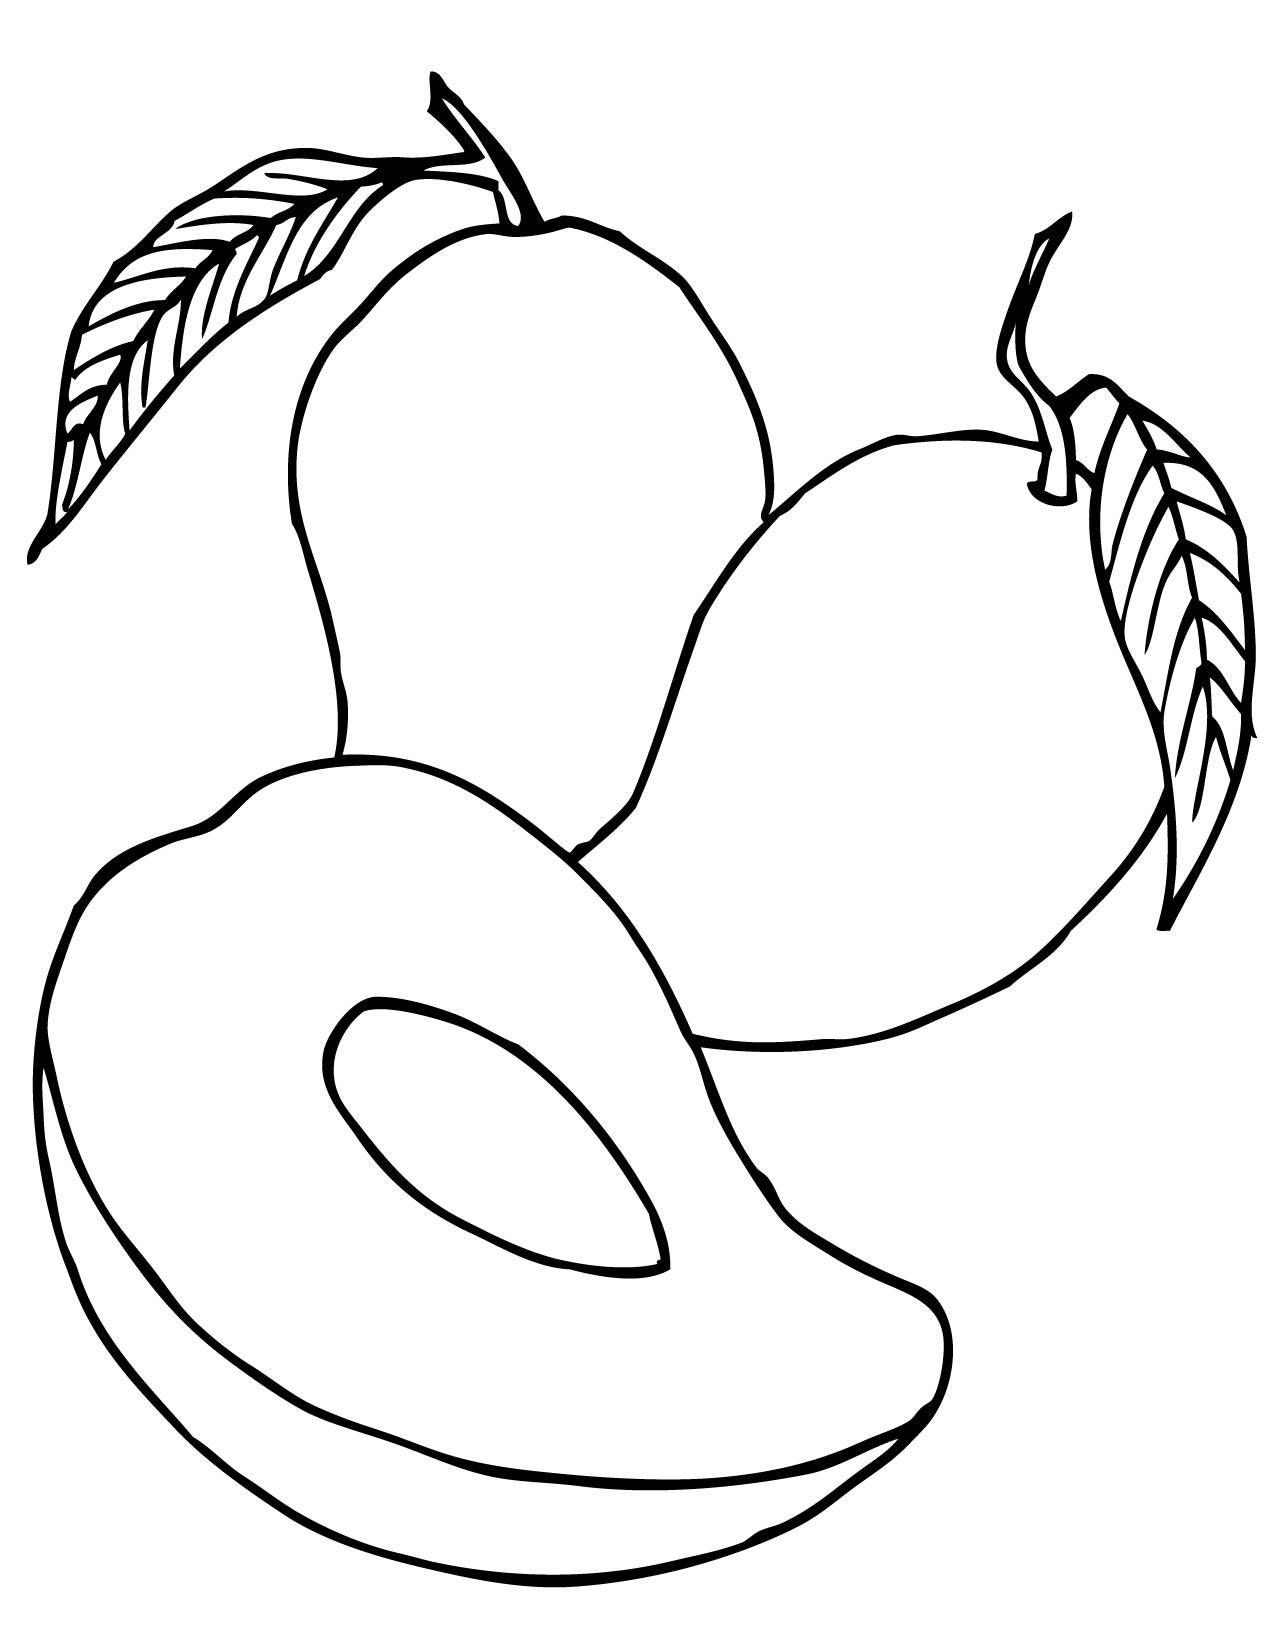 Black And White Fruit Clipart Google Search Coloring Pages